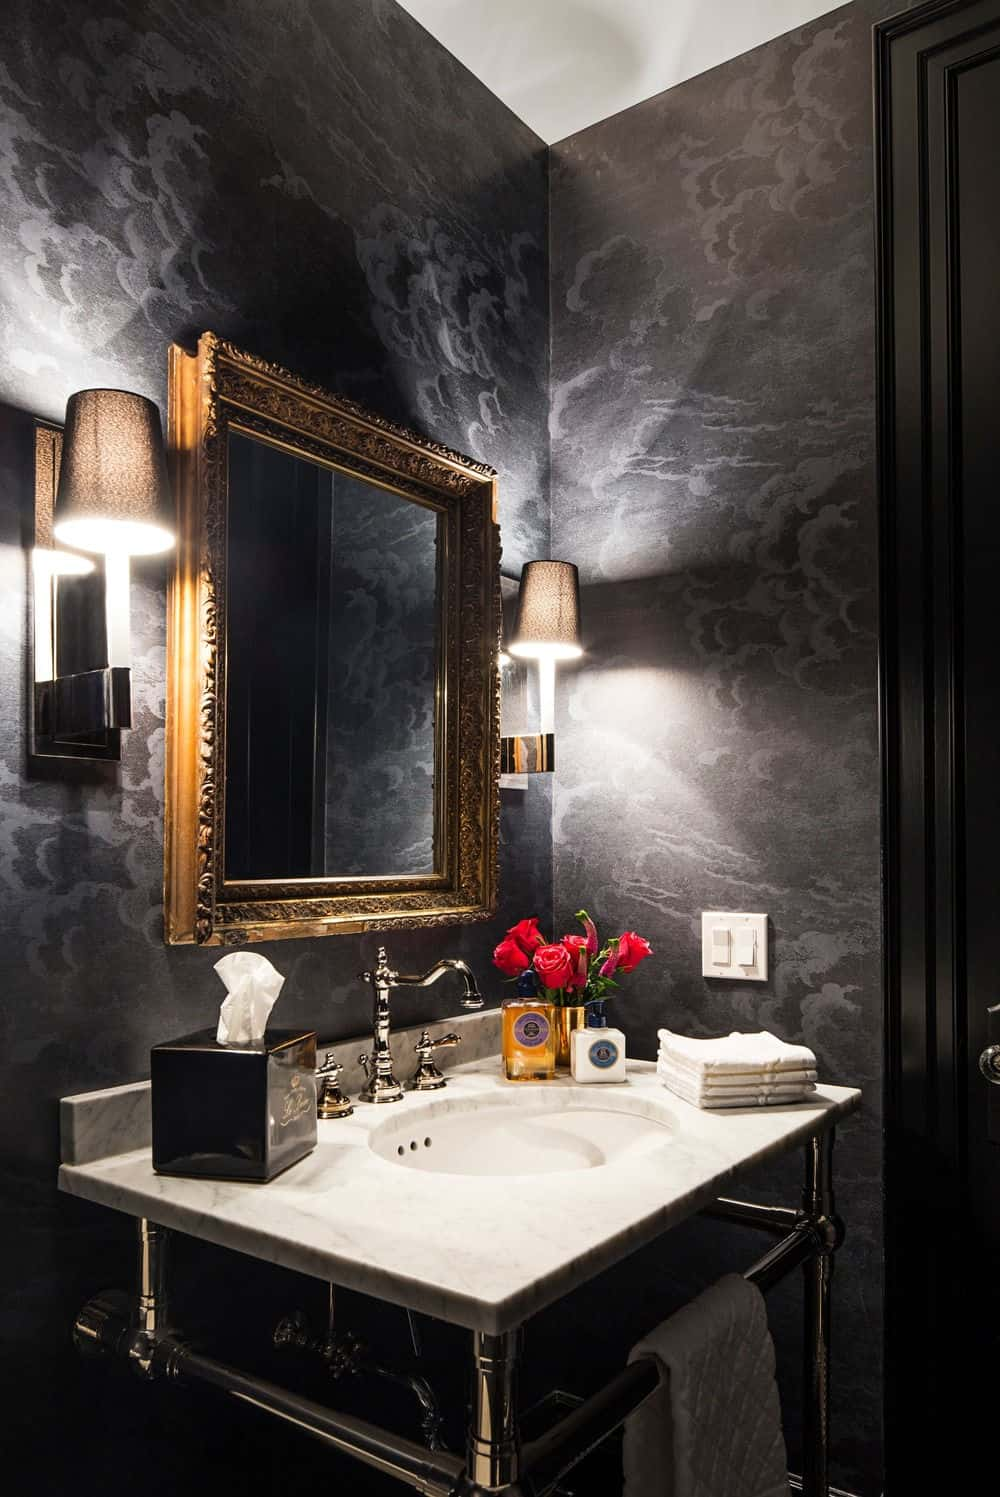 The powder room features a white sink counter surrounded by elegant black walls lighted by a couple of wall lights. Photo credit: Erik Rotter